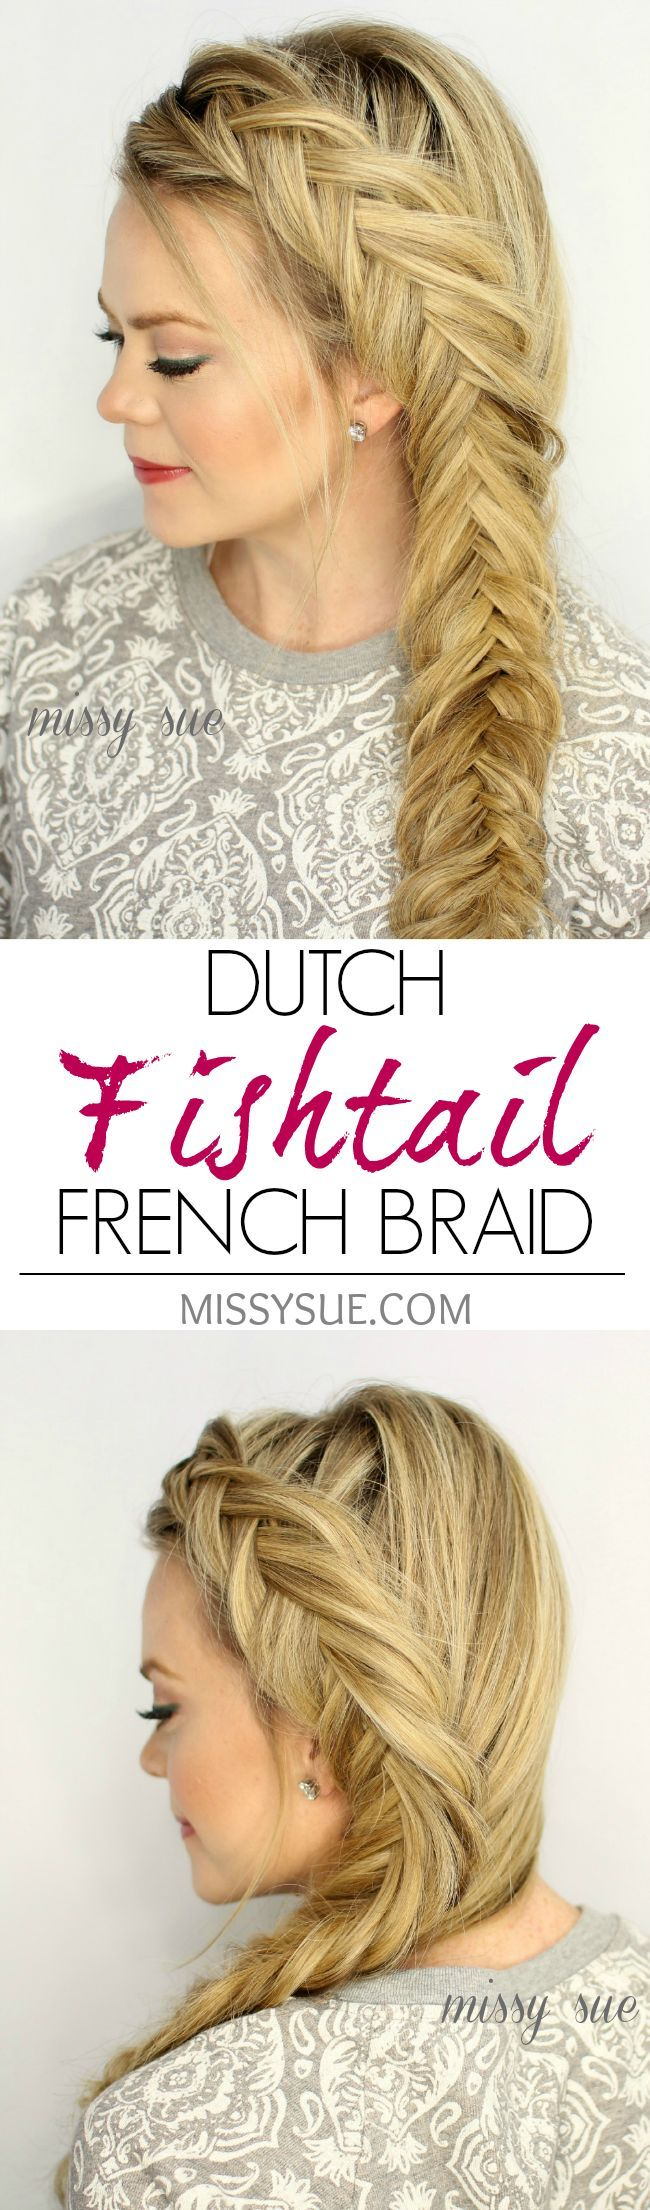 48 best HAIRSTYLE images on Pinterest | Hairstyles, Applying mascara ...